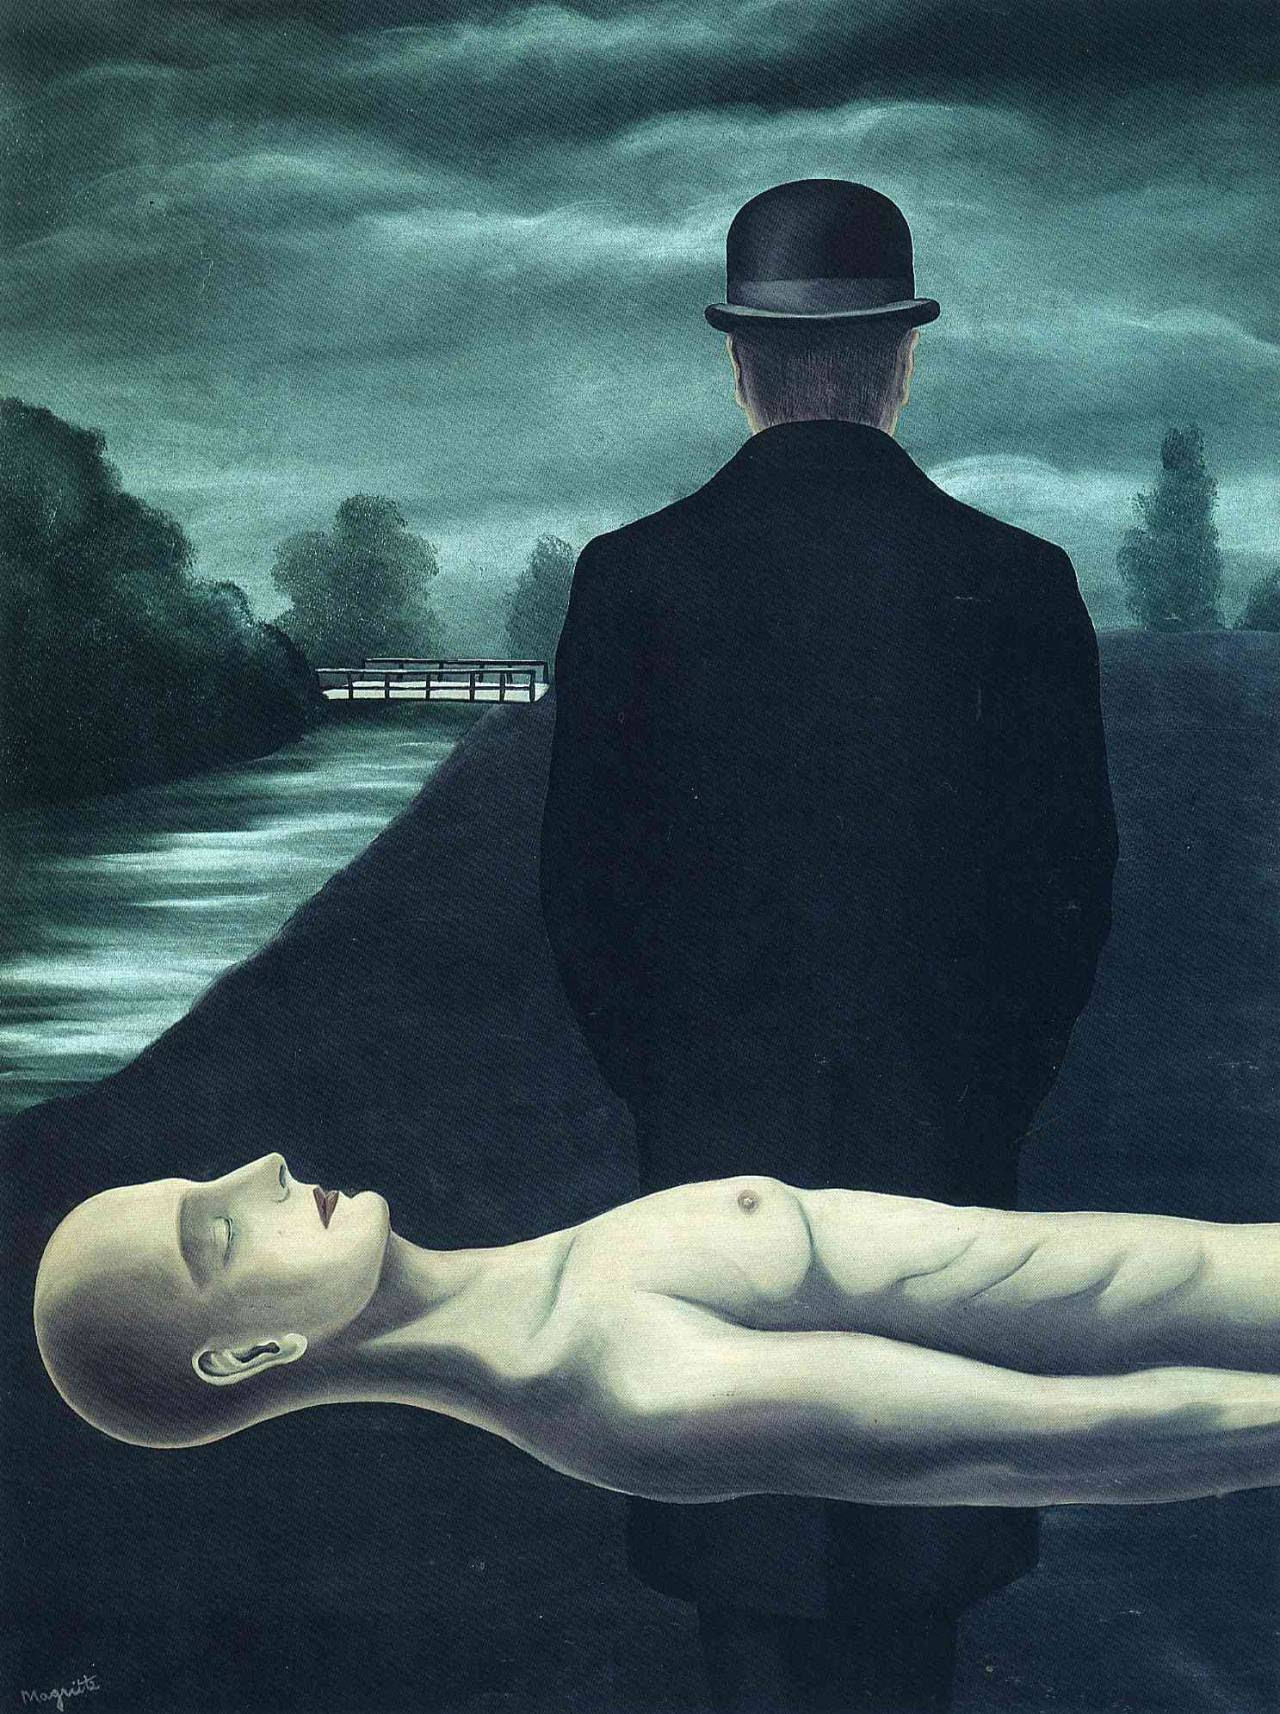 The musings of the solitary walker, 1926Rene Magritte